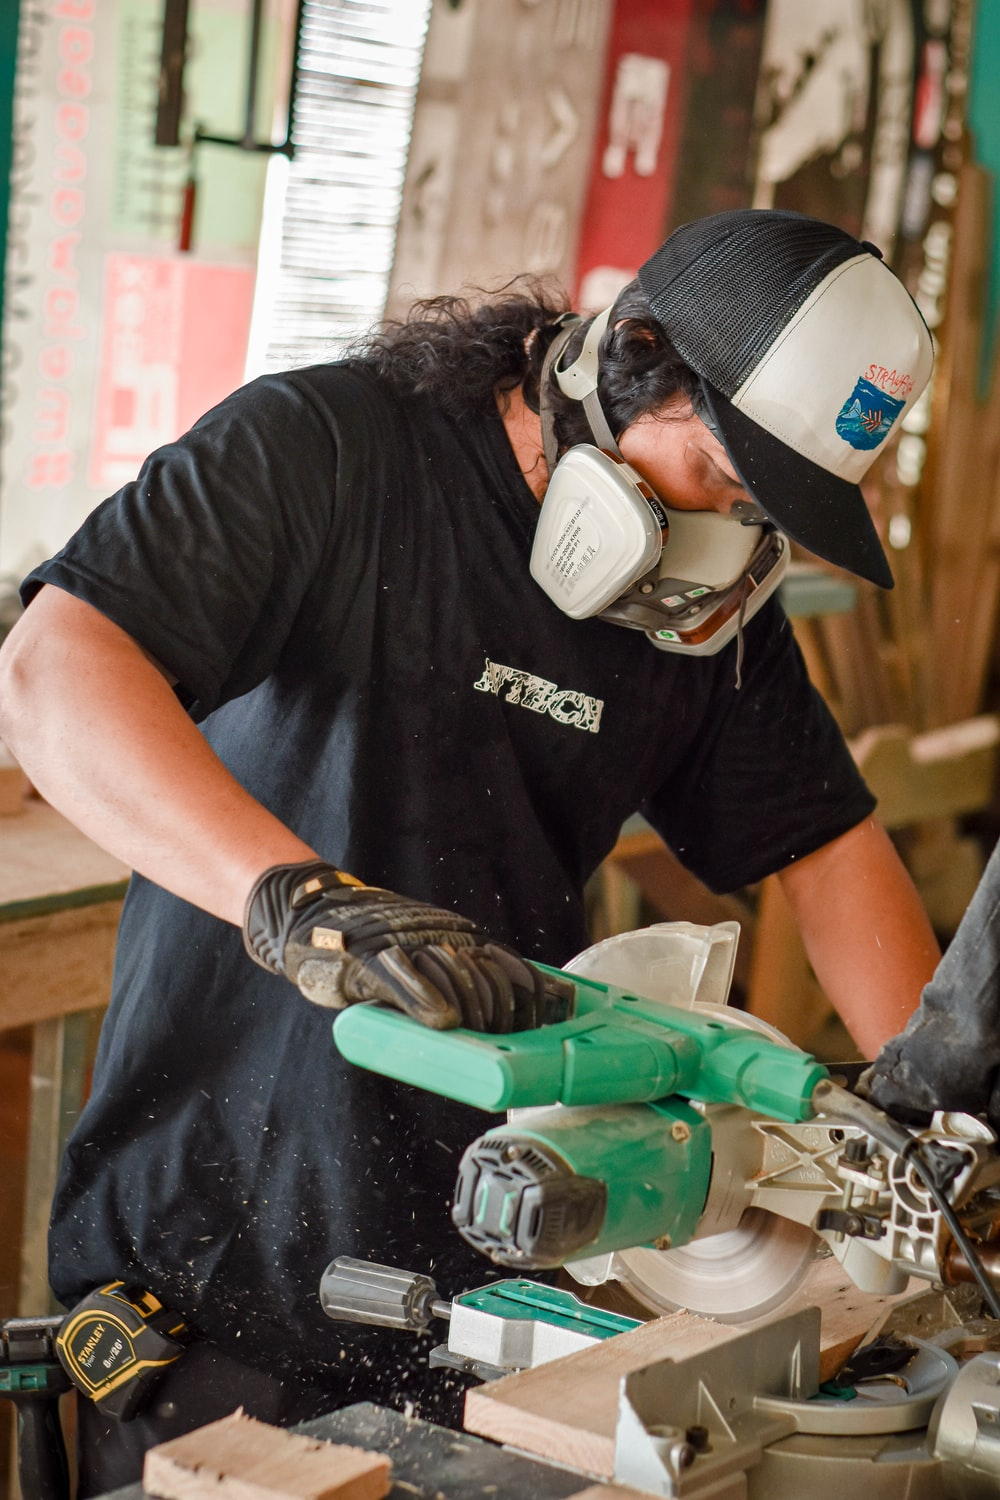 man in black crew neck t-shirt holding green and gray power tool